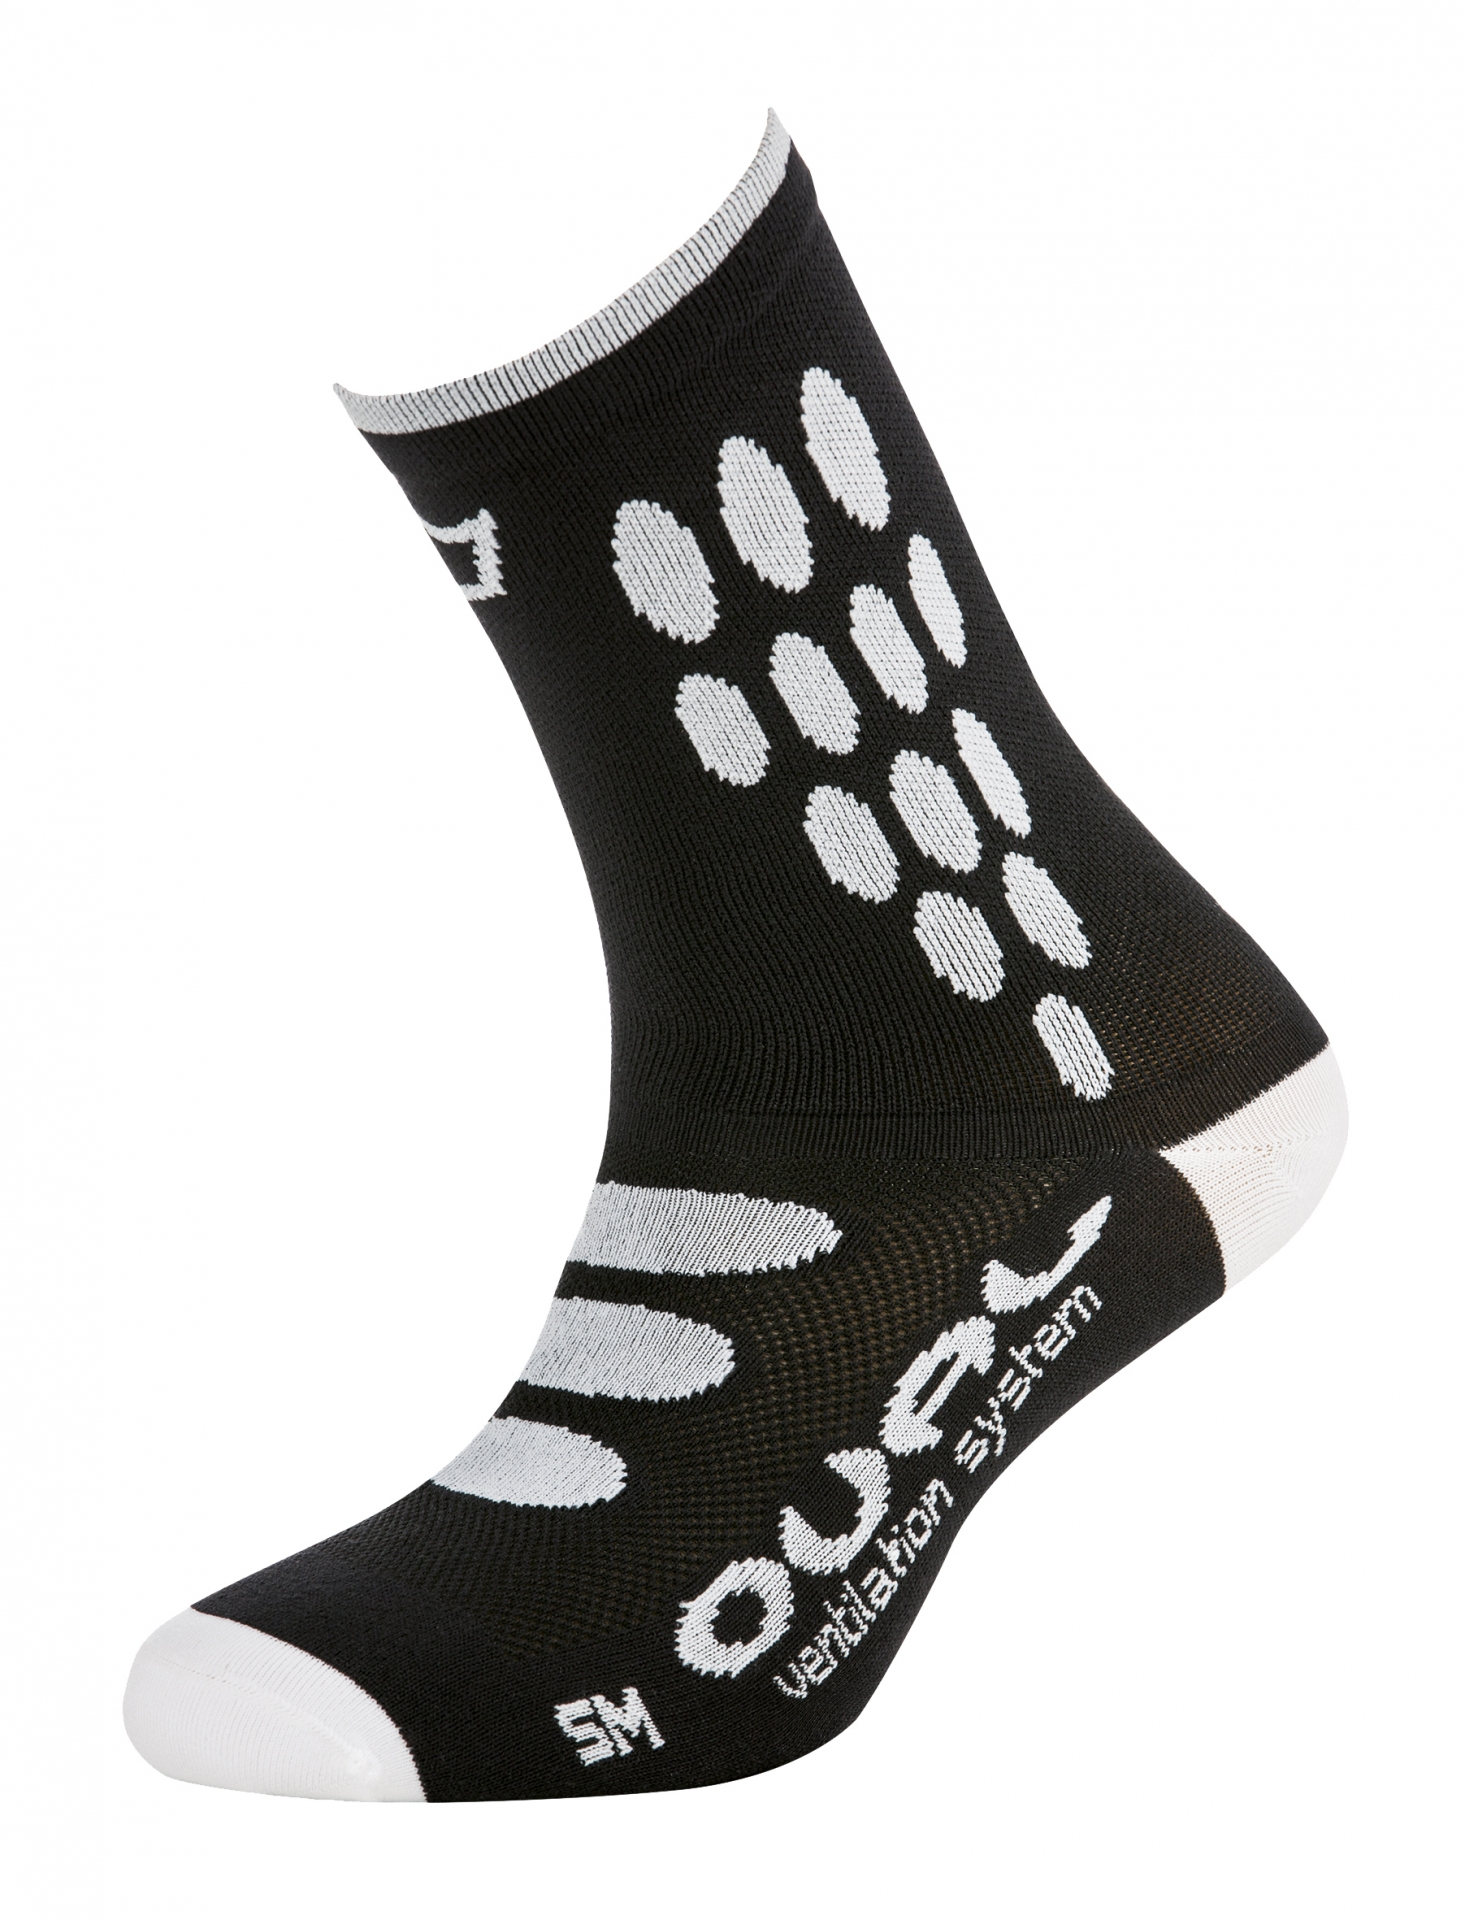 Chaussettes Catlike Oval Supplex Noire/Blanc - 37-42